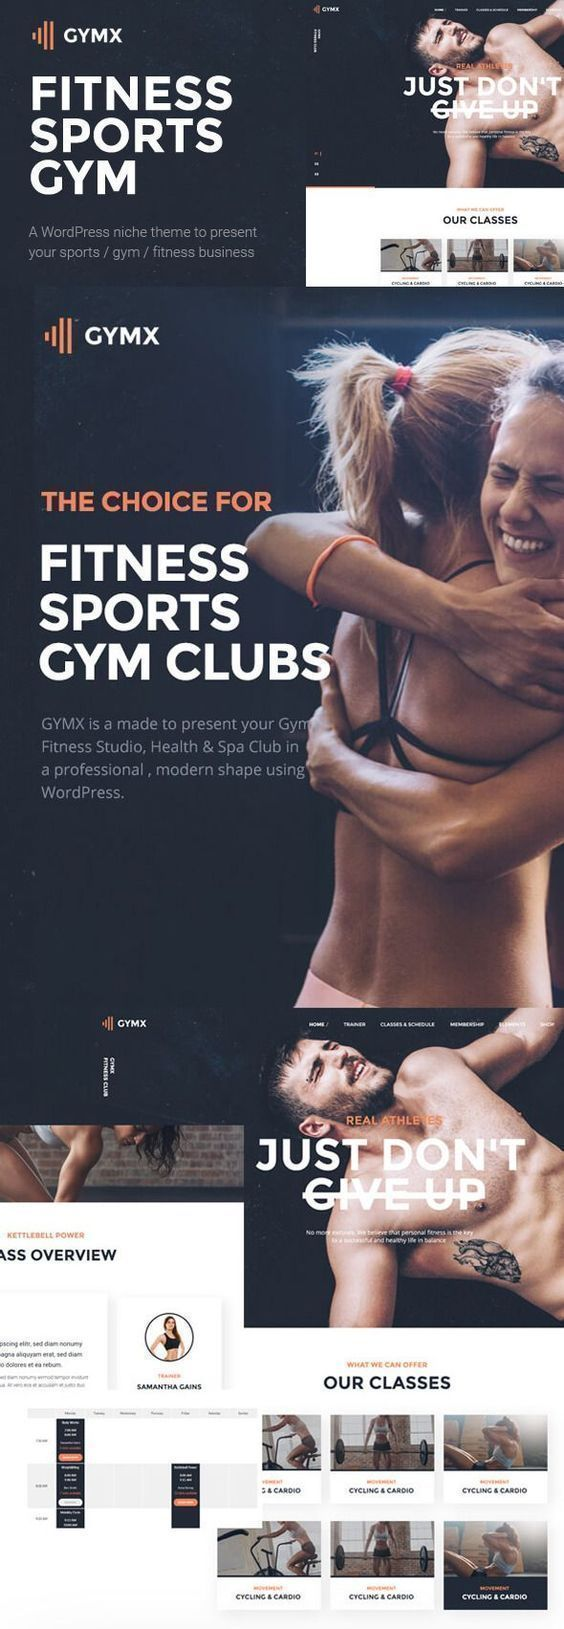 Gym X - Fitness, Gym & Sports WordPress Theme. A modern fitness website template which is ideal for...